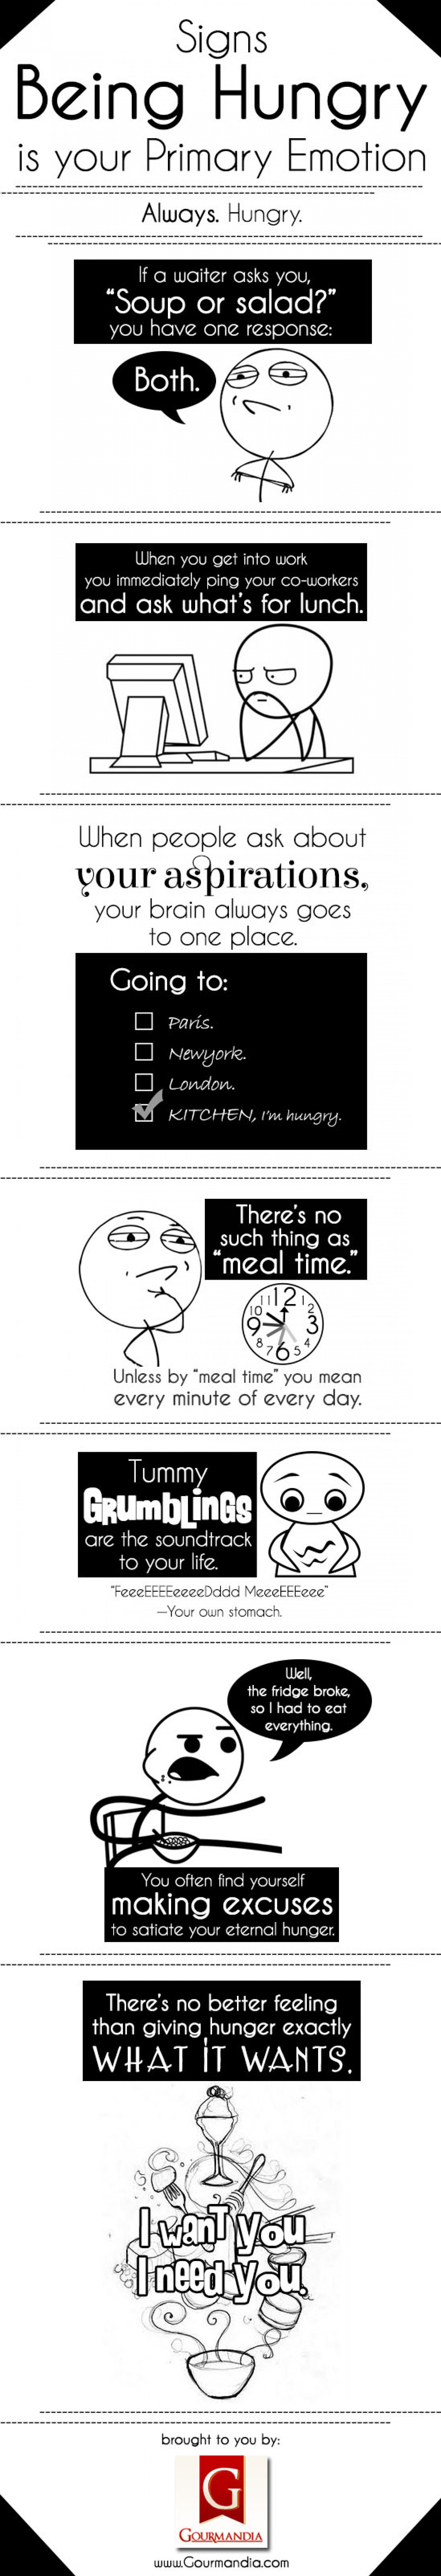 Signs being Hungry is your Primary Emotion Infographic